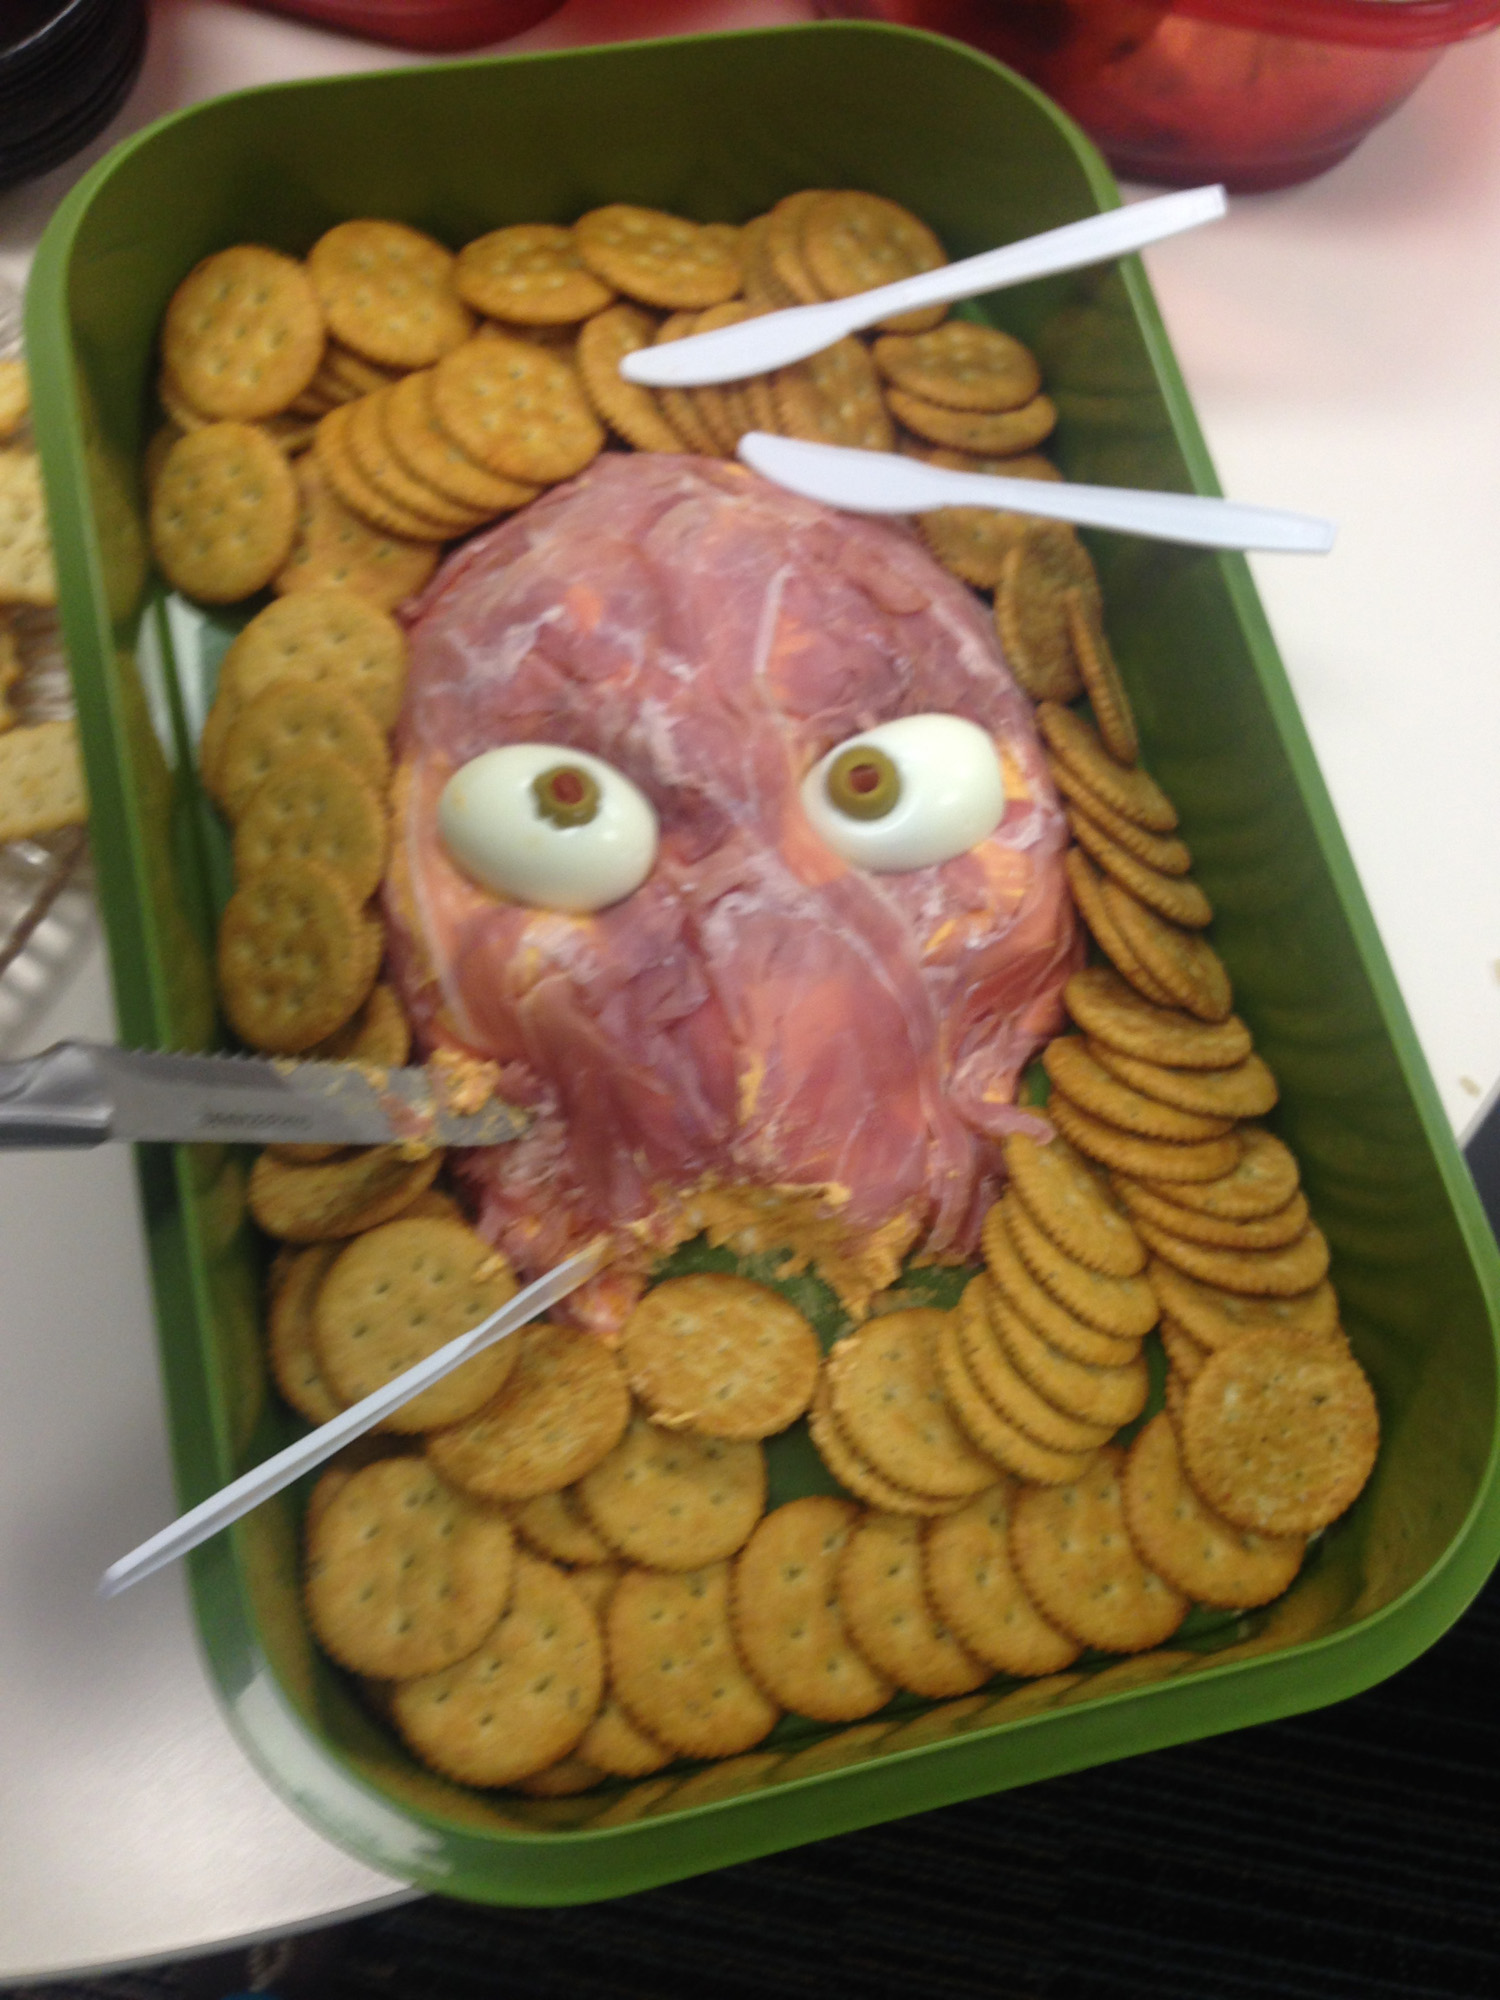 6887 Office Halloween food